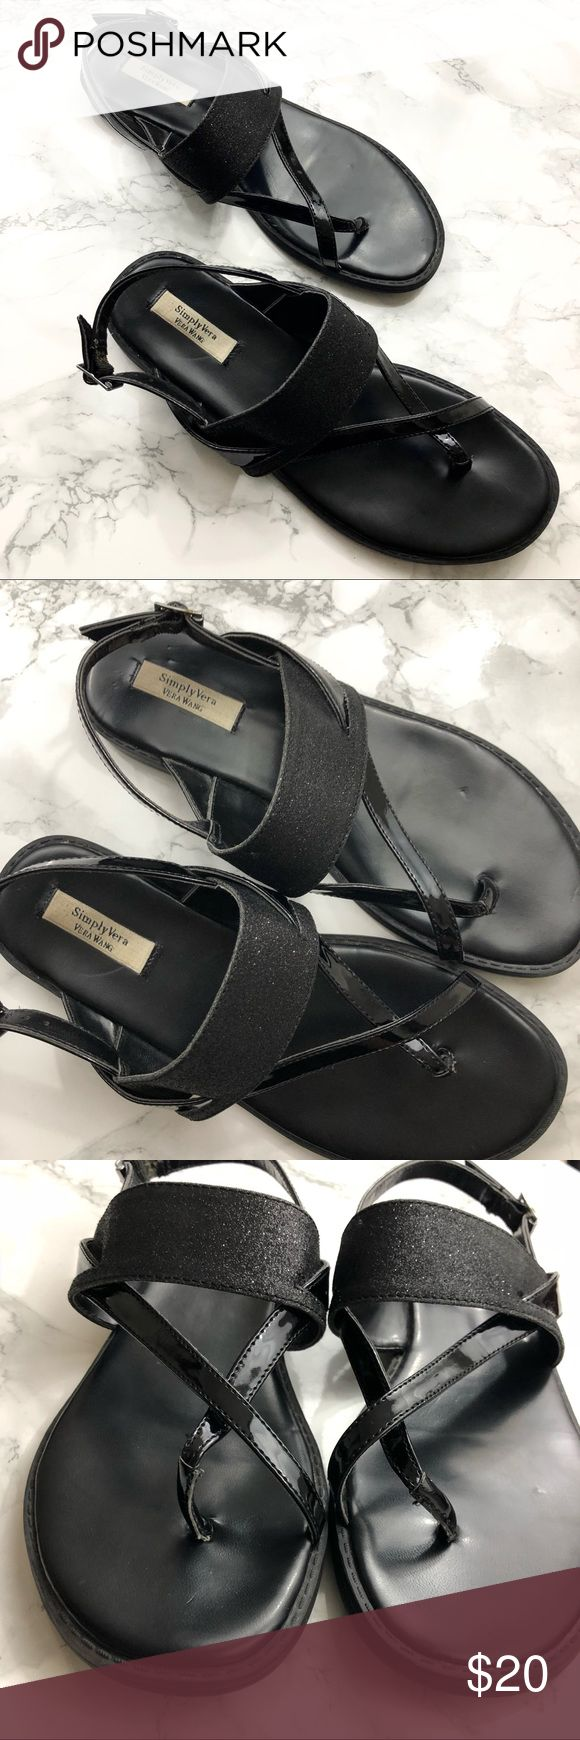 Simply Vera Vera Wang Black Sparkly Sandals Simply Vera Vera Wang Black Sparkly Sandals. Great condition, only worn a few times. Size 7 Medium Simply Vera Vera Wang Shoes Sandals